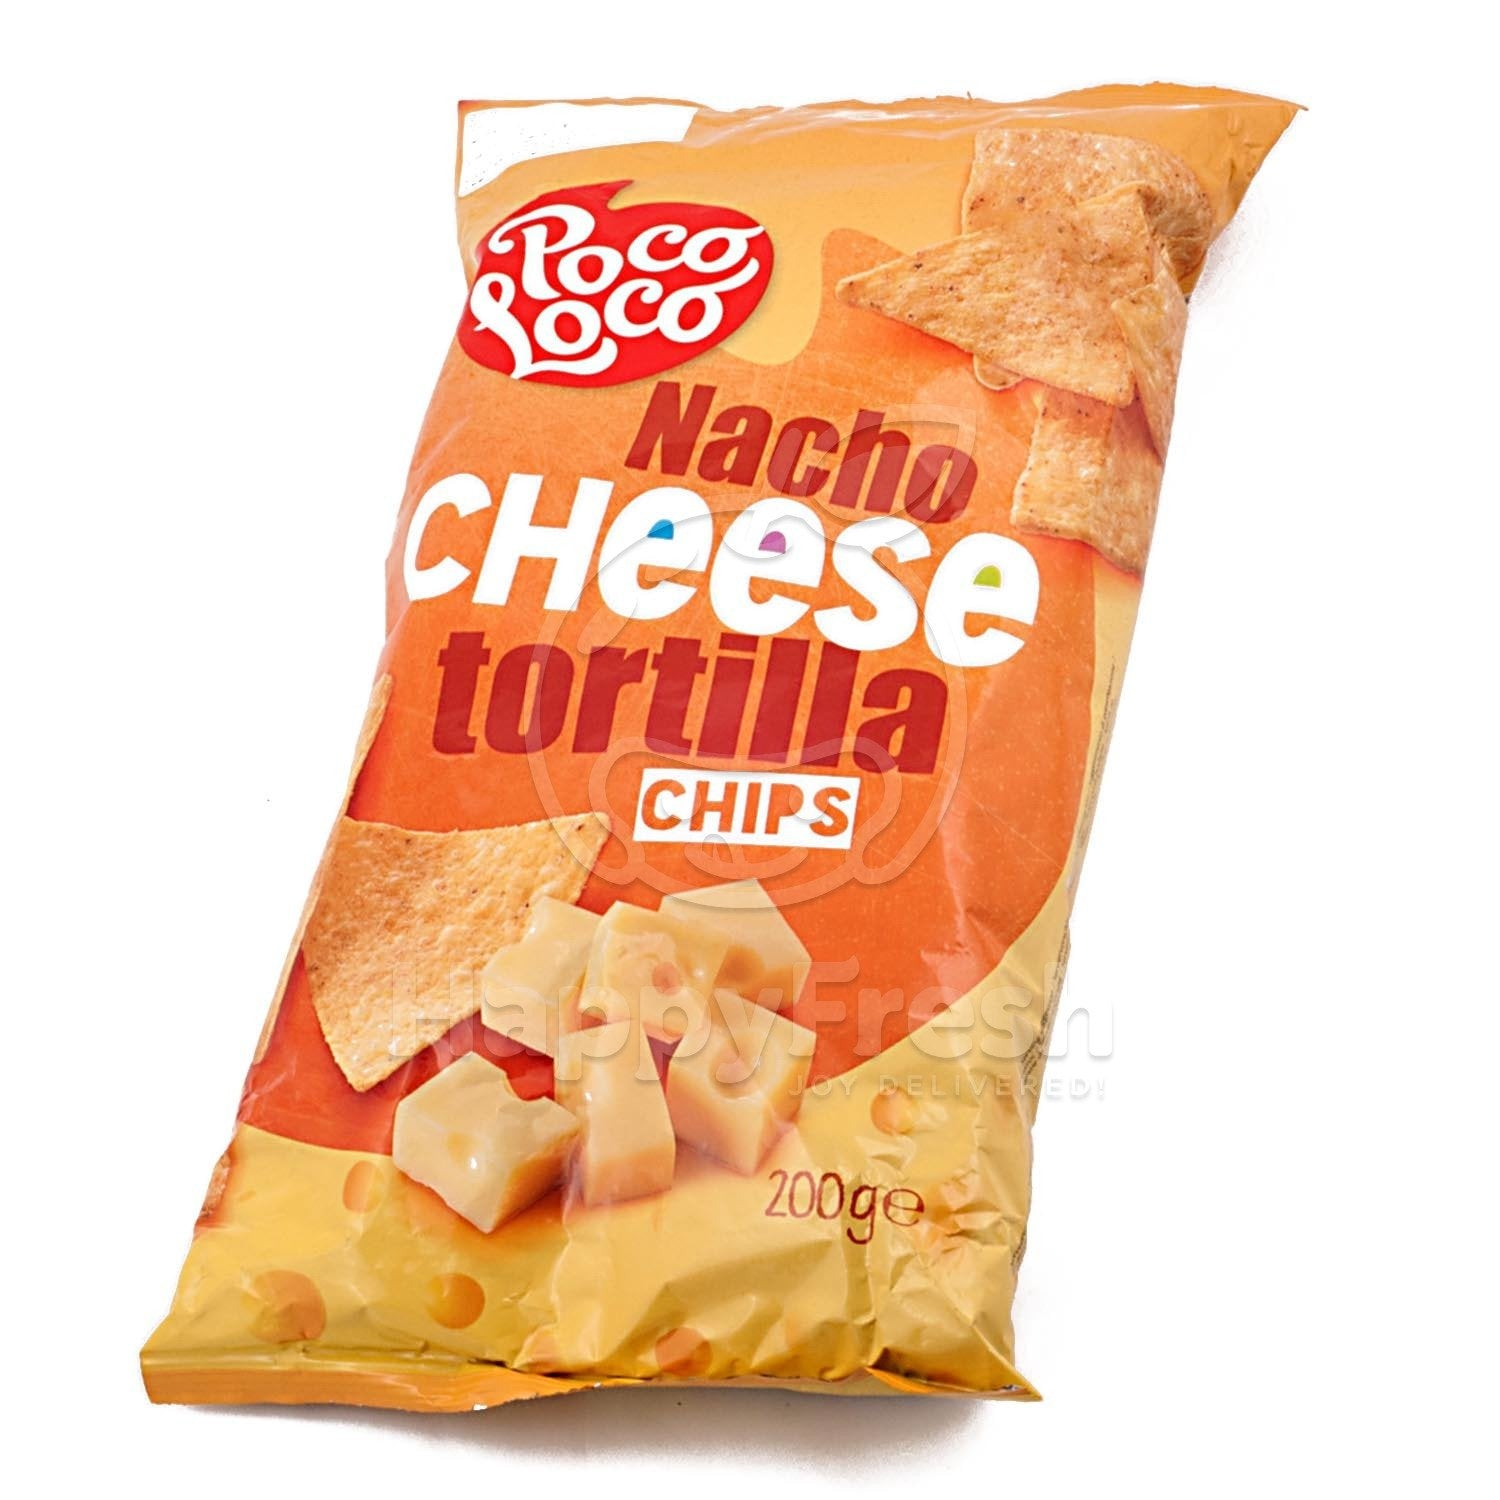 aga>Chips Tortilla Poco Loco nachos cheese 200g